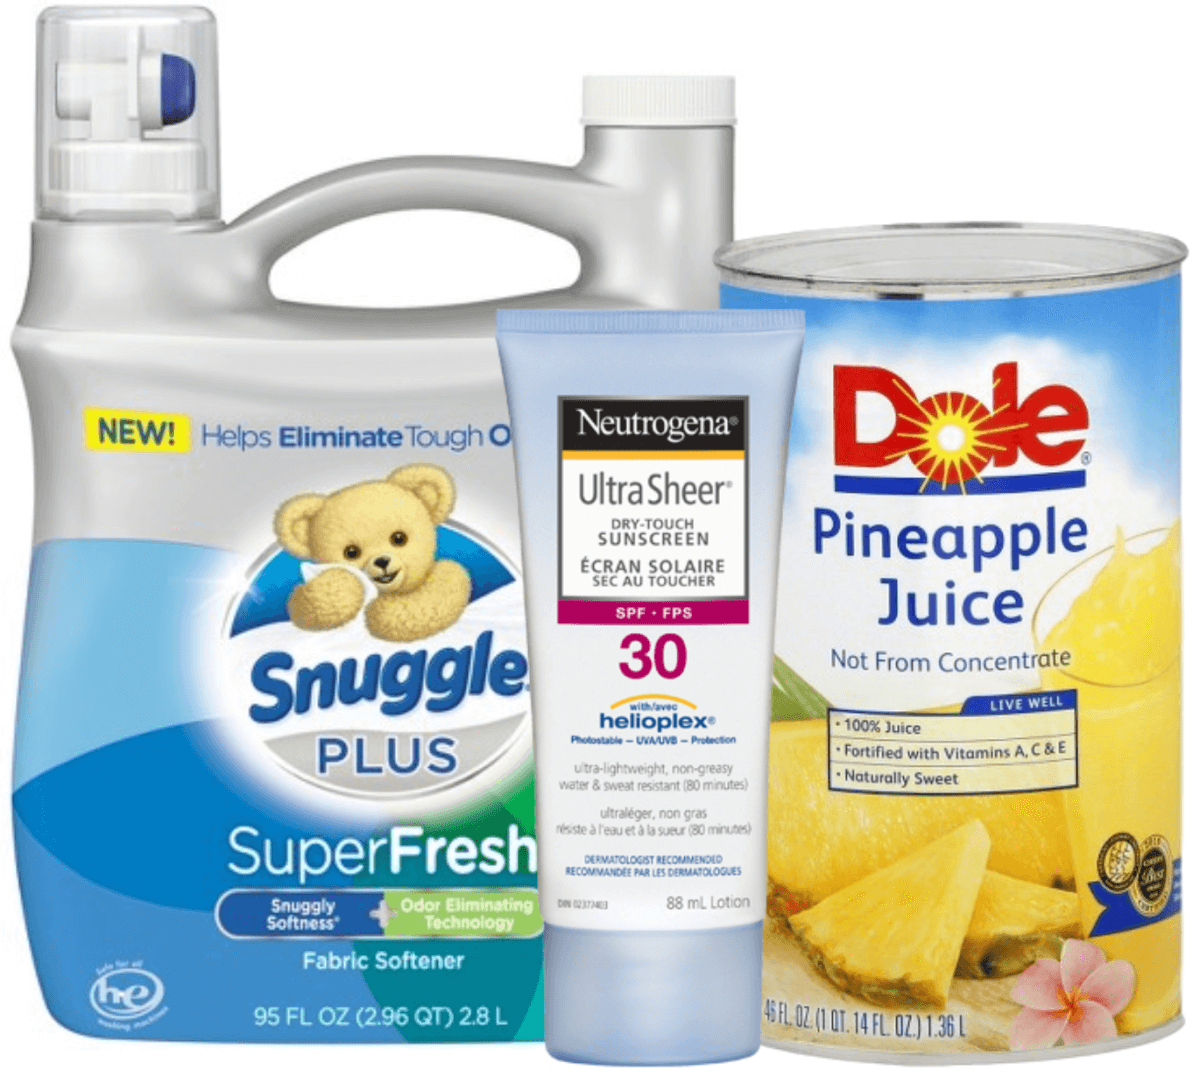 image about Snuggle Coupons Printable referred to as Todays Best Clean Discount coupons - Help you save upon Snuggle, Dole, Neutrogena